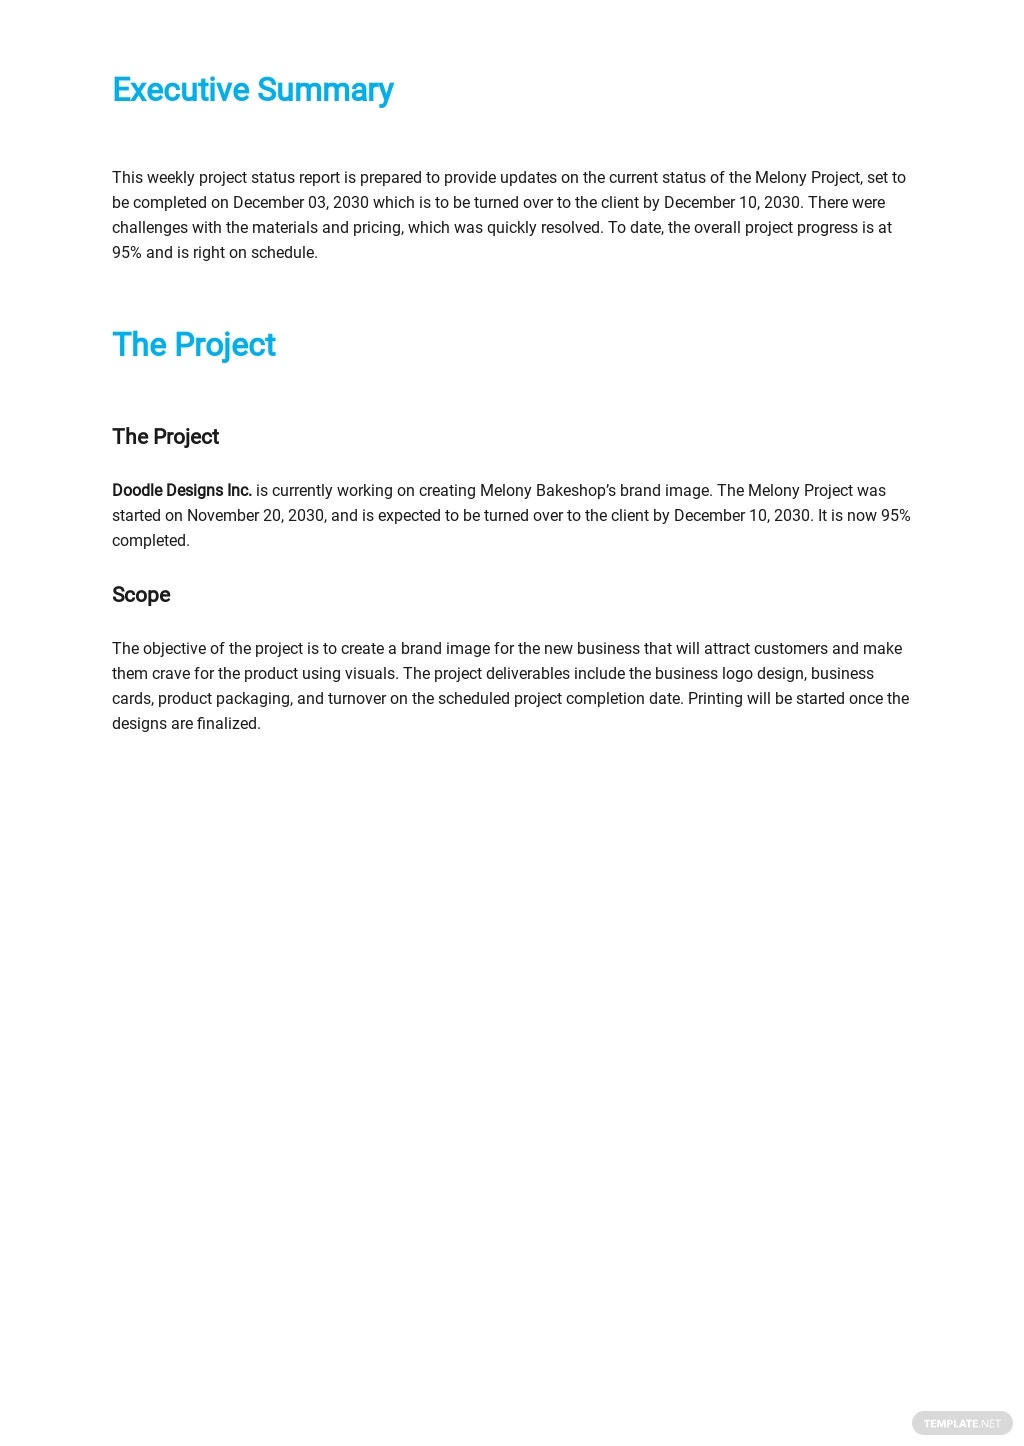 Weekly Project Status Report Template  - Google Docs, Word